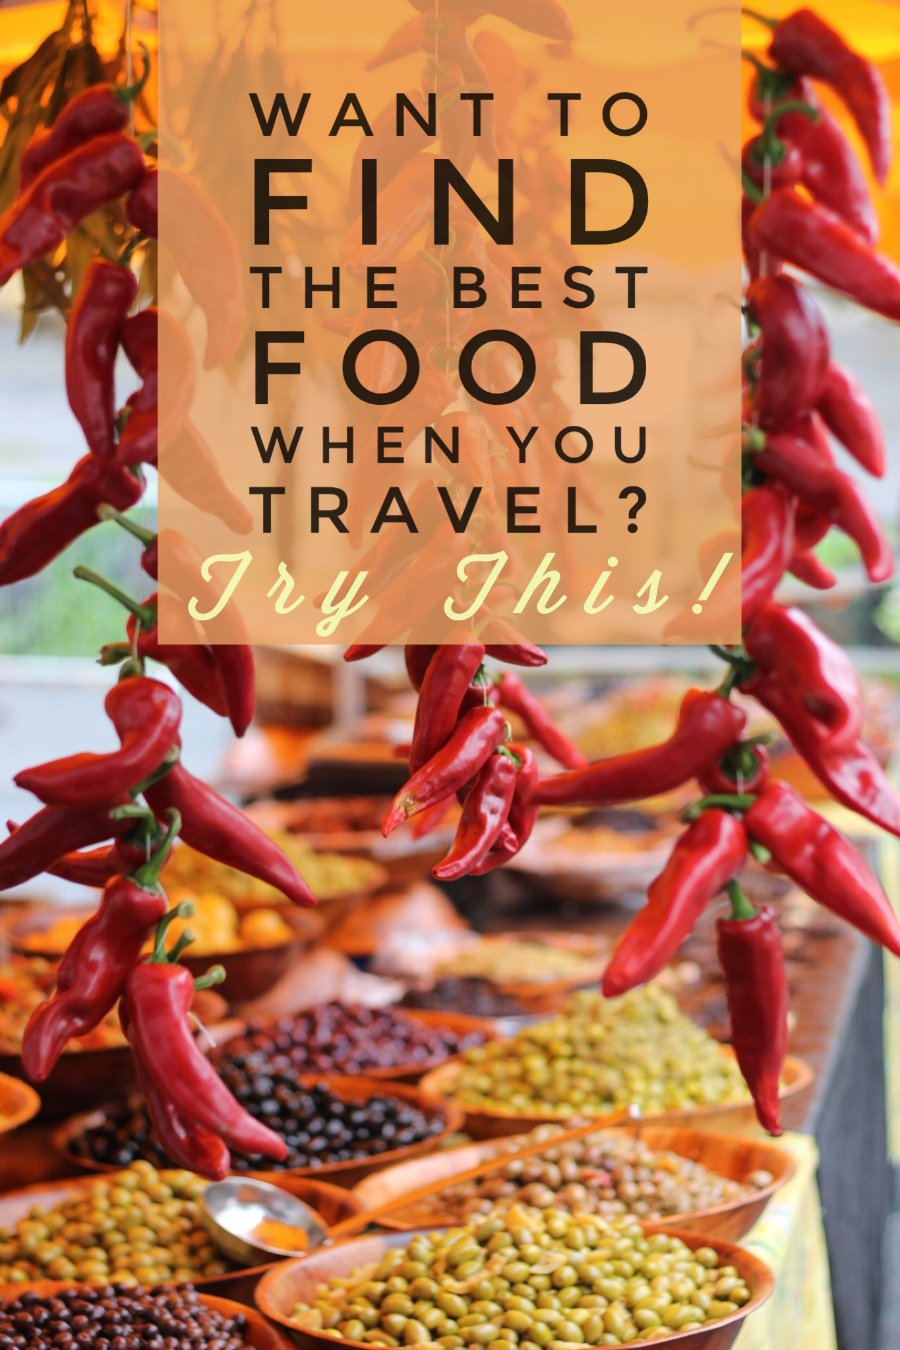 We asked 25 travel bloggers to inspire you with a glimpse inside the best food tours they've ever taken. Here's what they had to say.